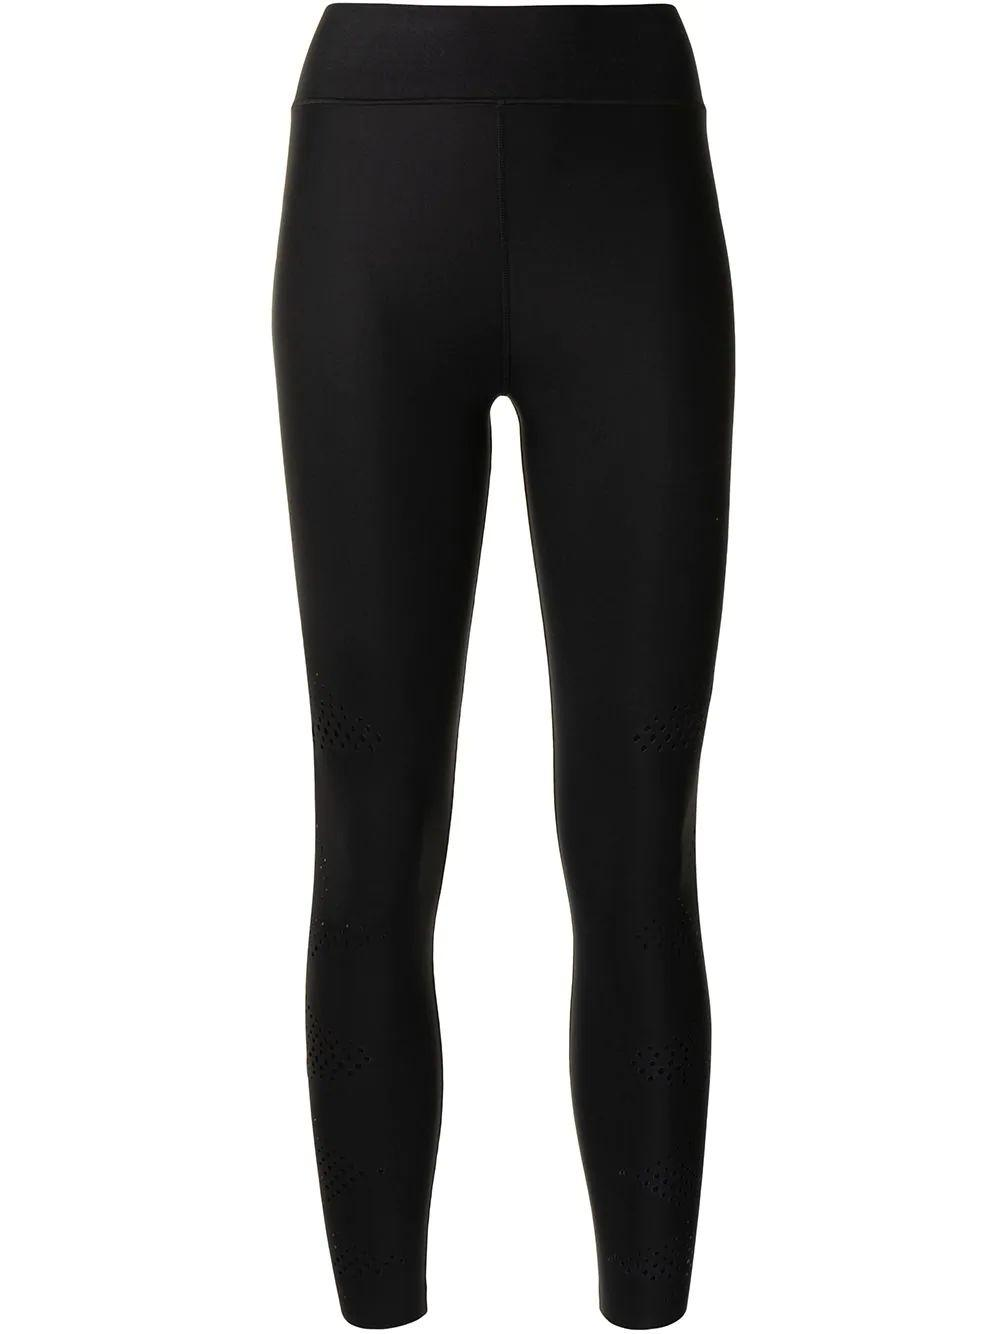 Onduler Pix Ultra High Leggings Item # A520OP302LUXBP -H